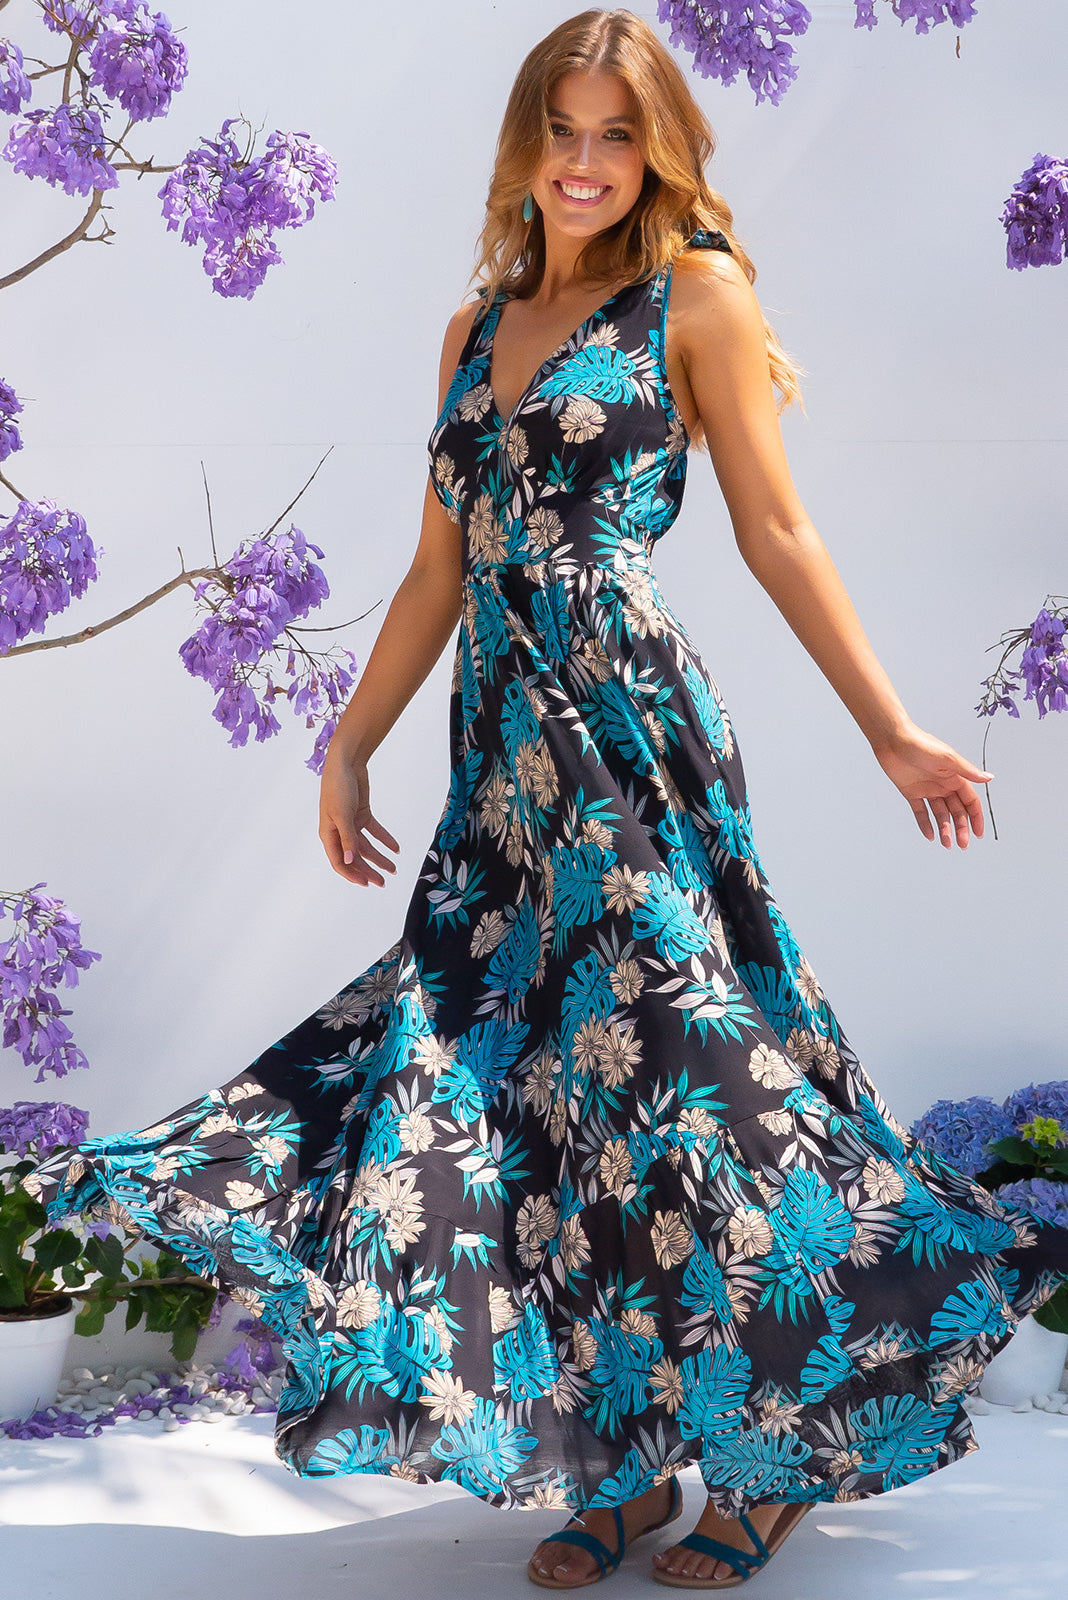 Luana Teal Ferns Maxi Dress with adjustable straps, pockets, full skirt and made from 100% viscose.